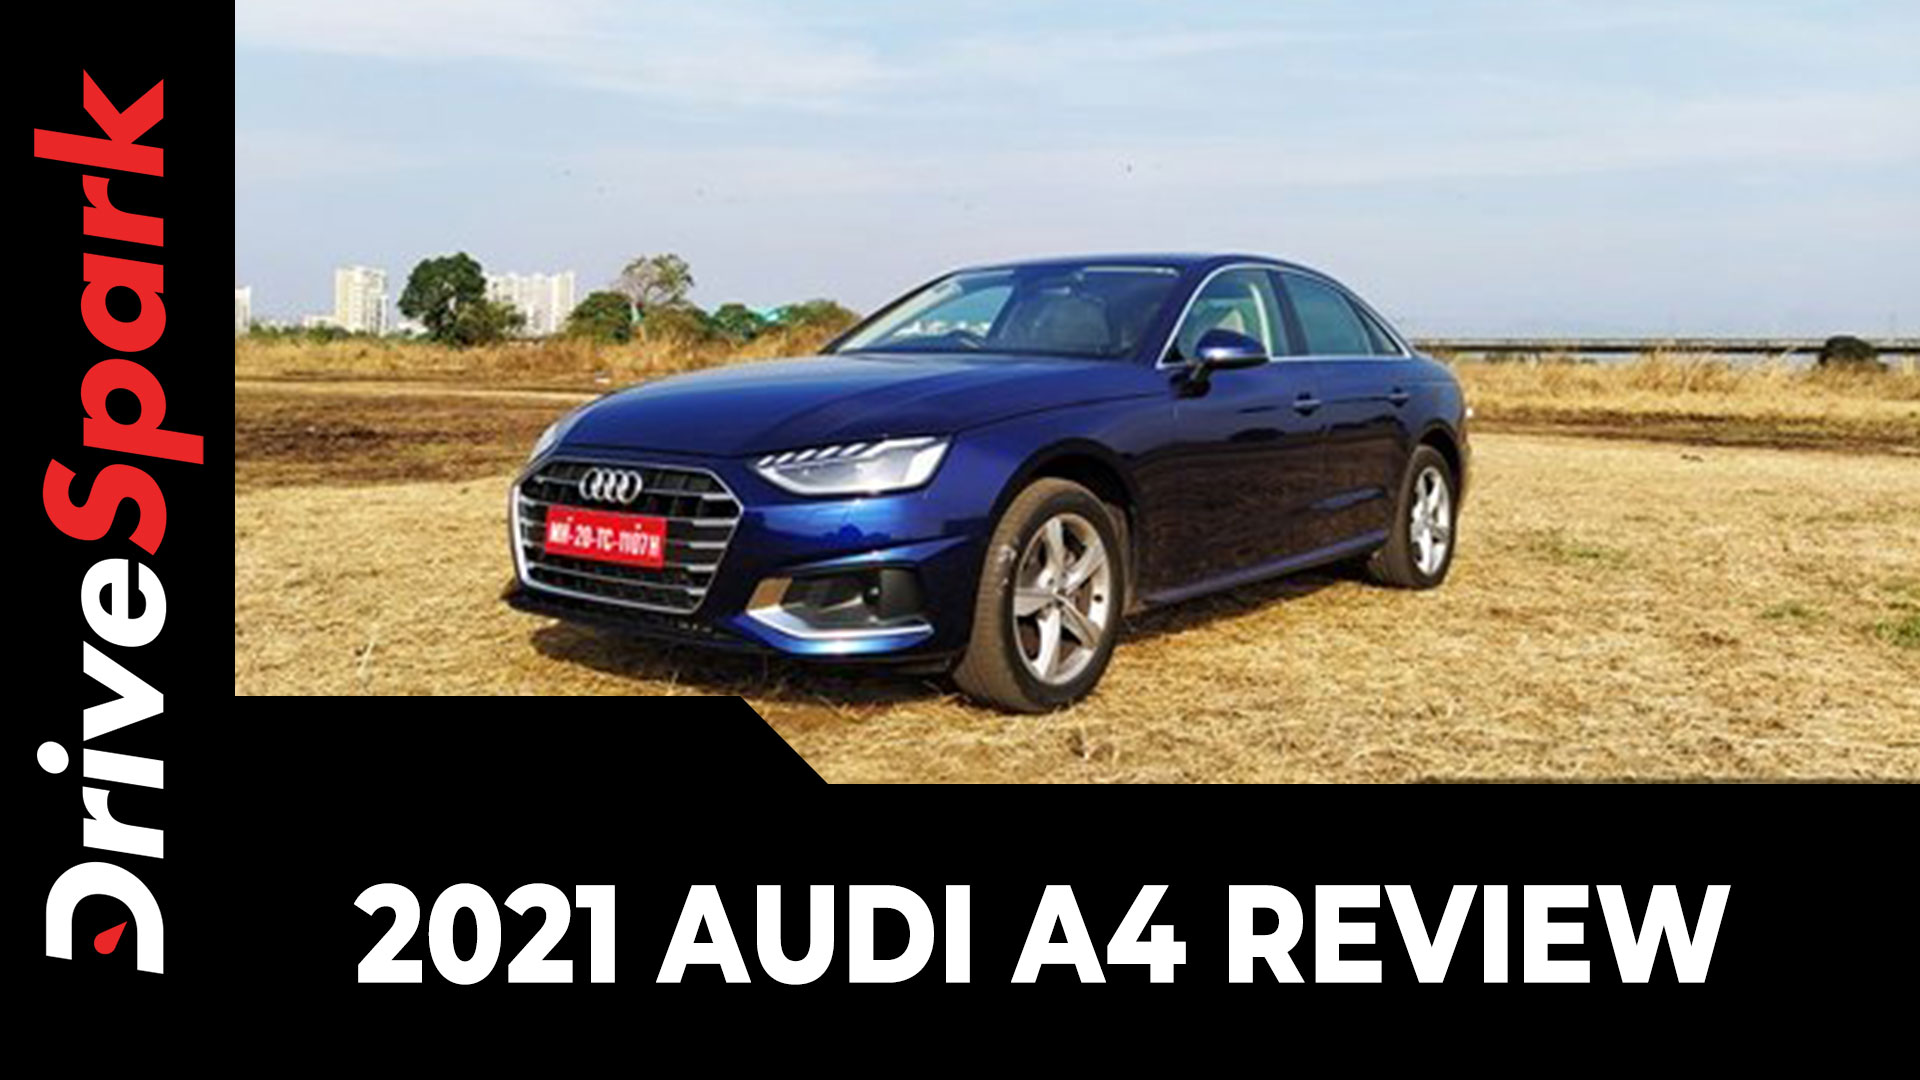 2021 Audi A4 Review | Performance, Handling, Specs, Features & Other Details